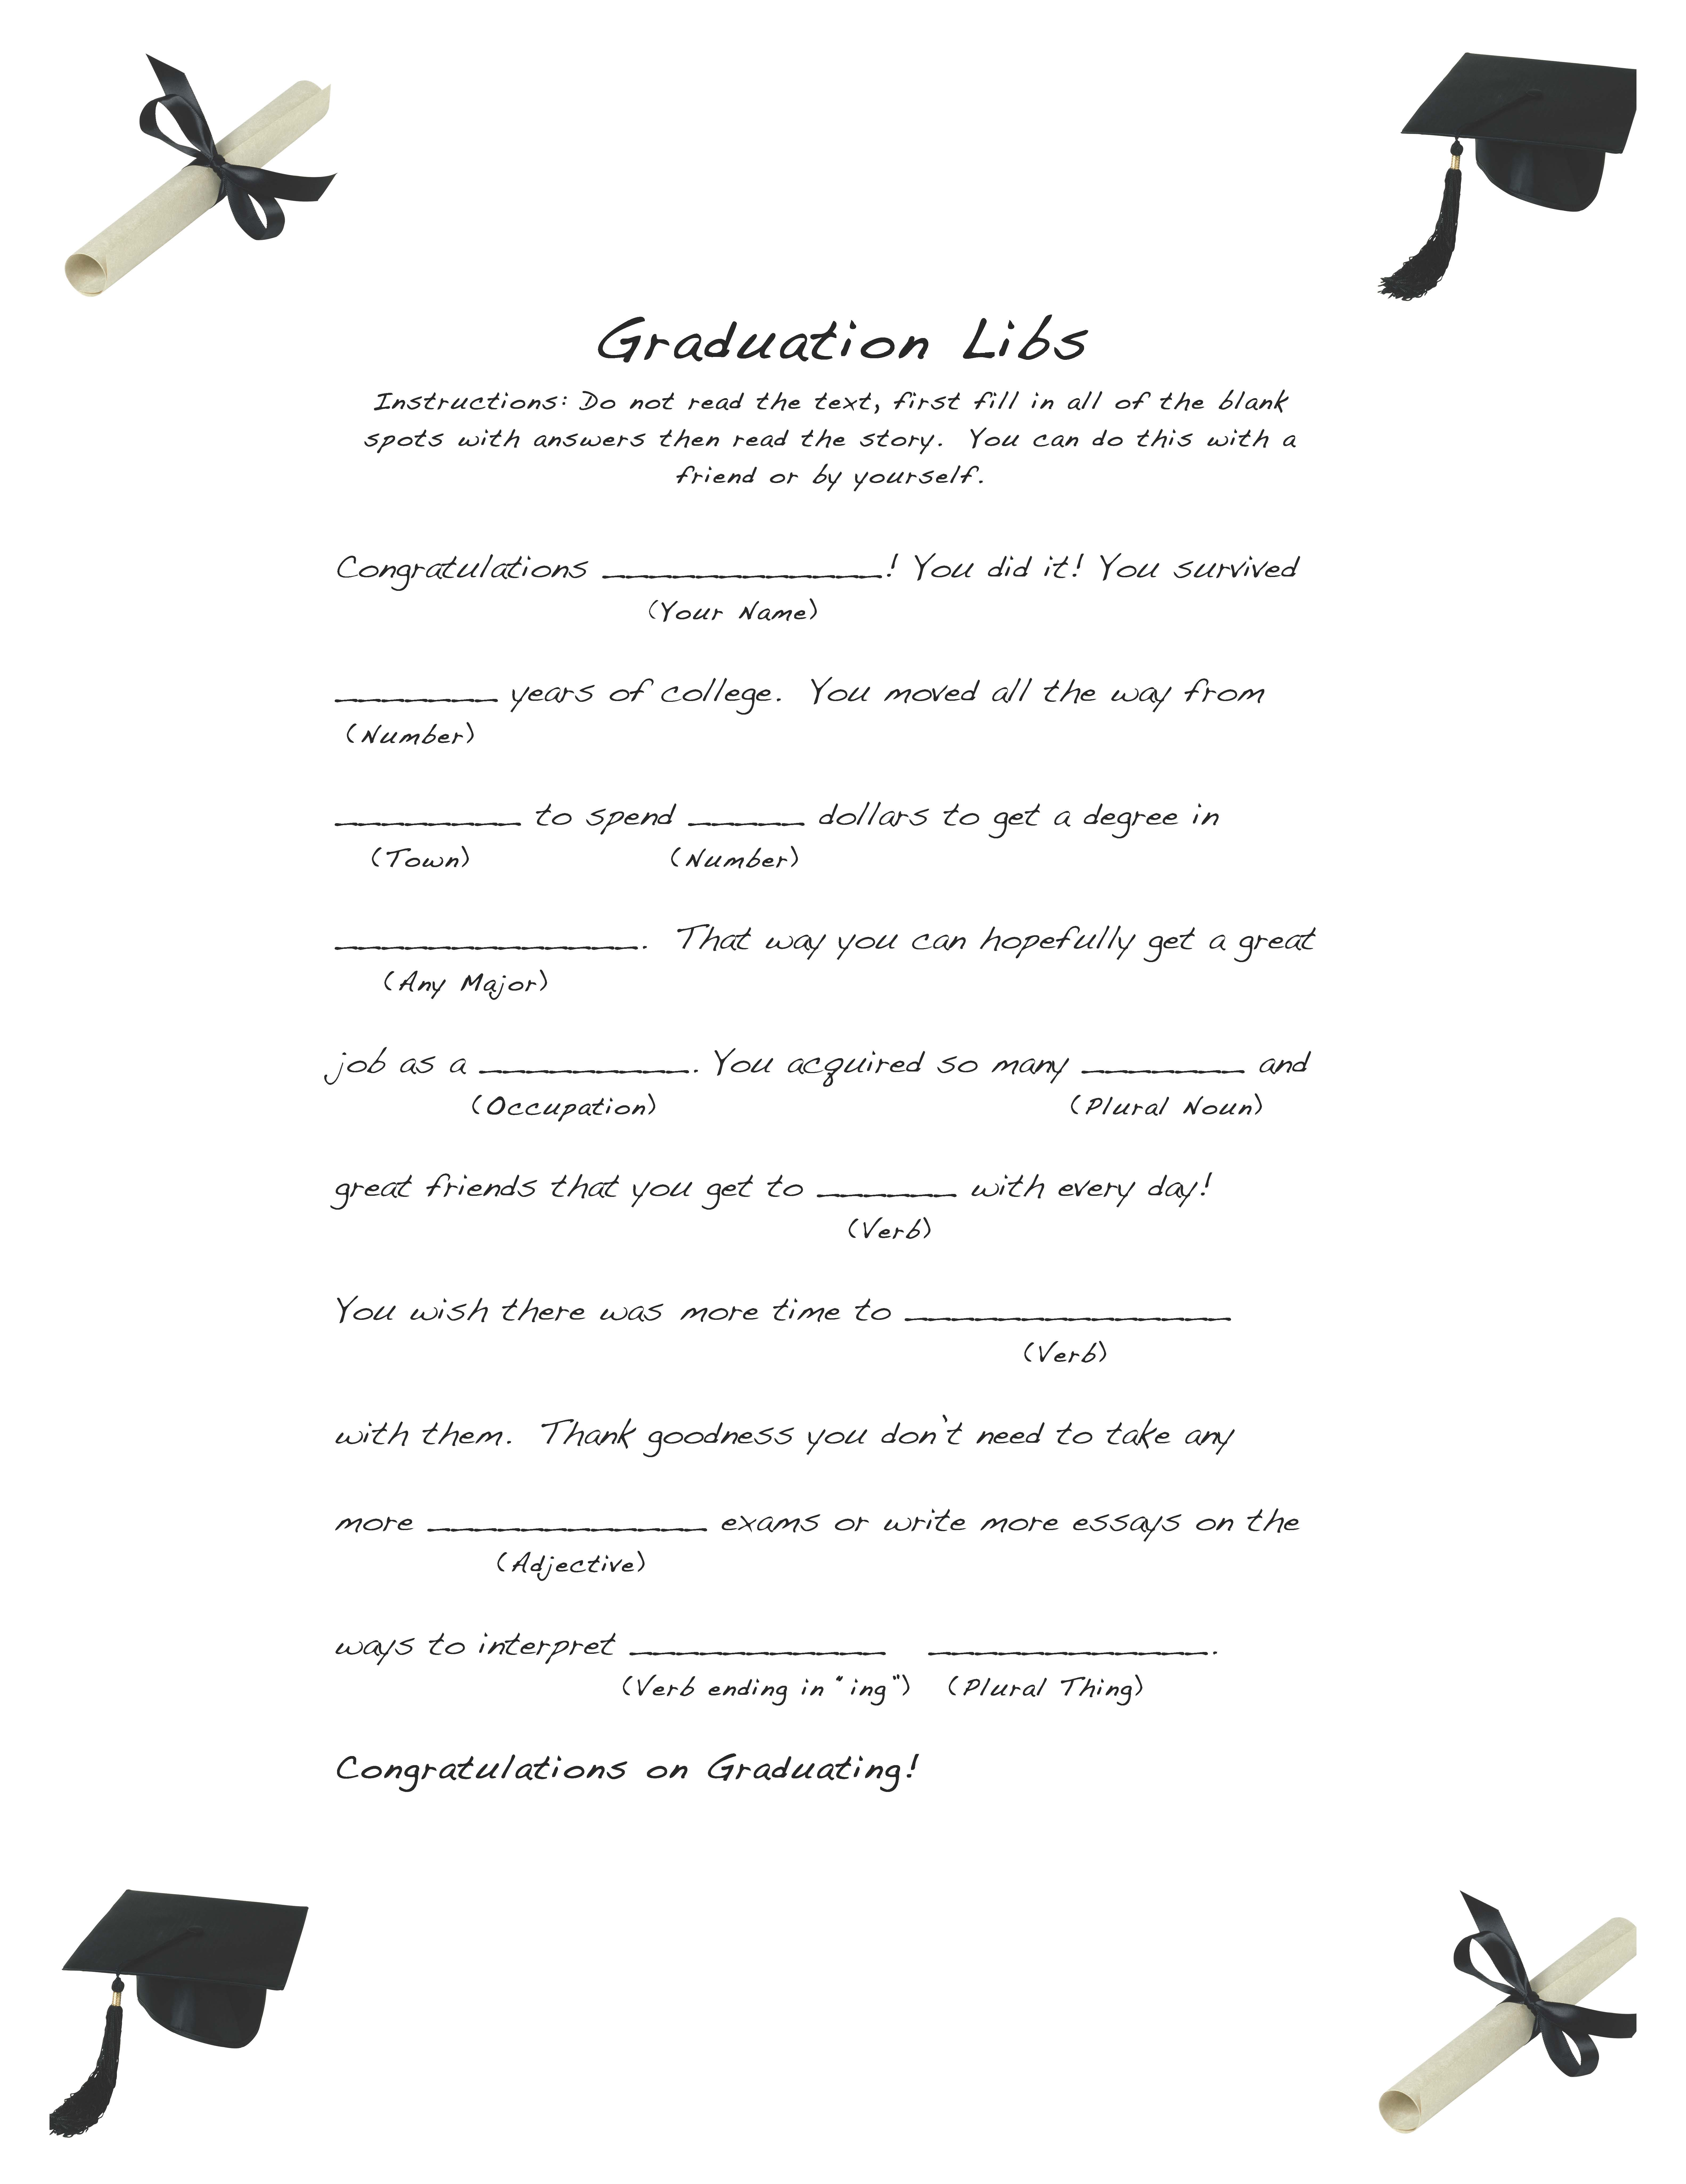 Free And Easy Graduation Libs Easy Event Ideas